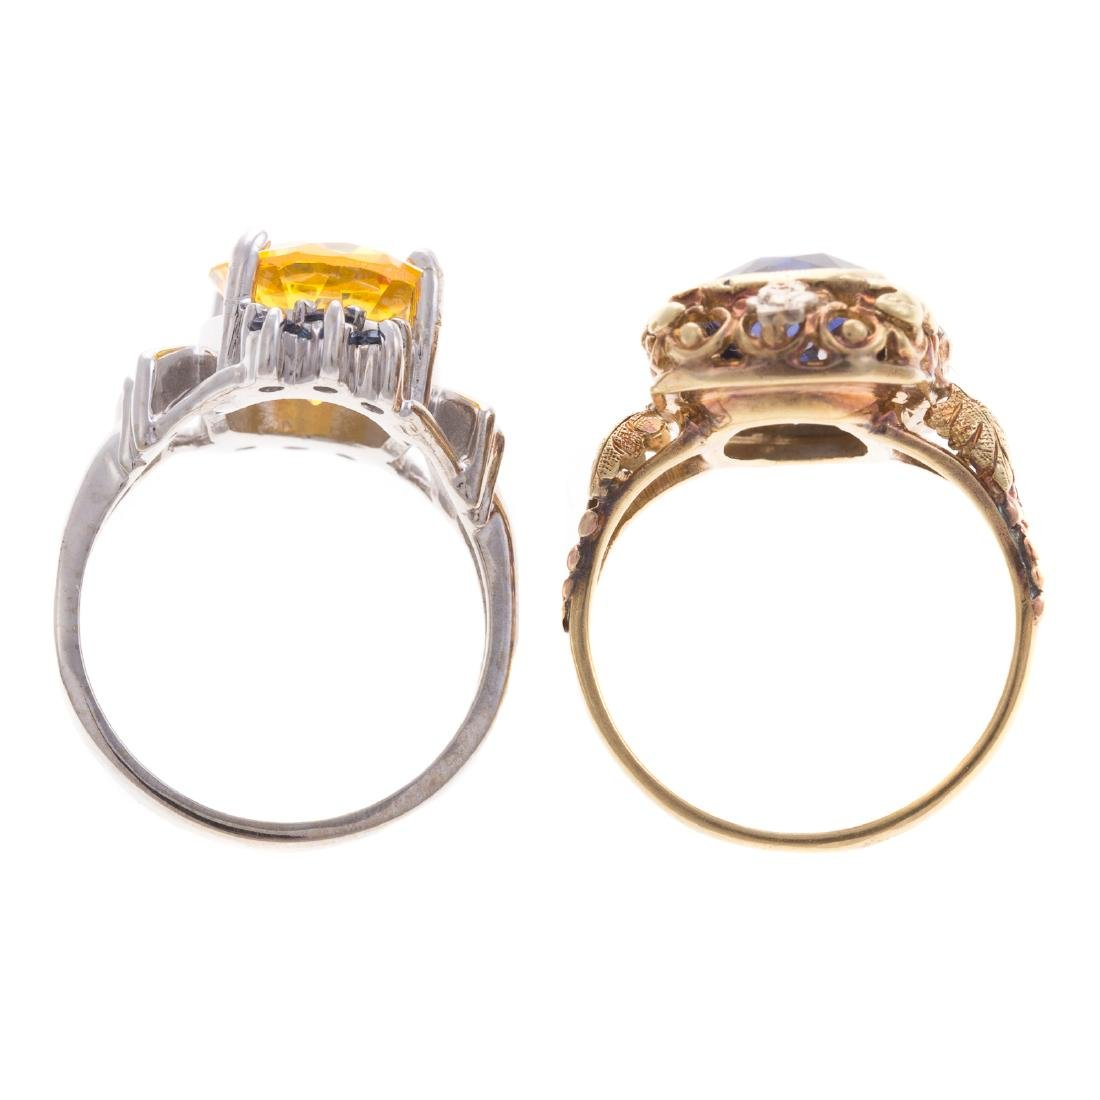 A Pair of Lady's Colored Gemstone Rings in Gold - 3